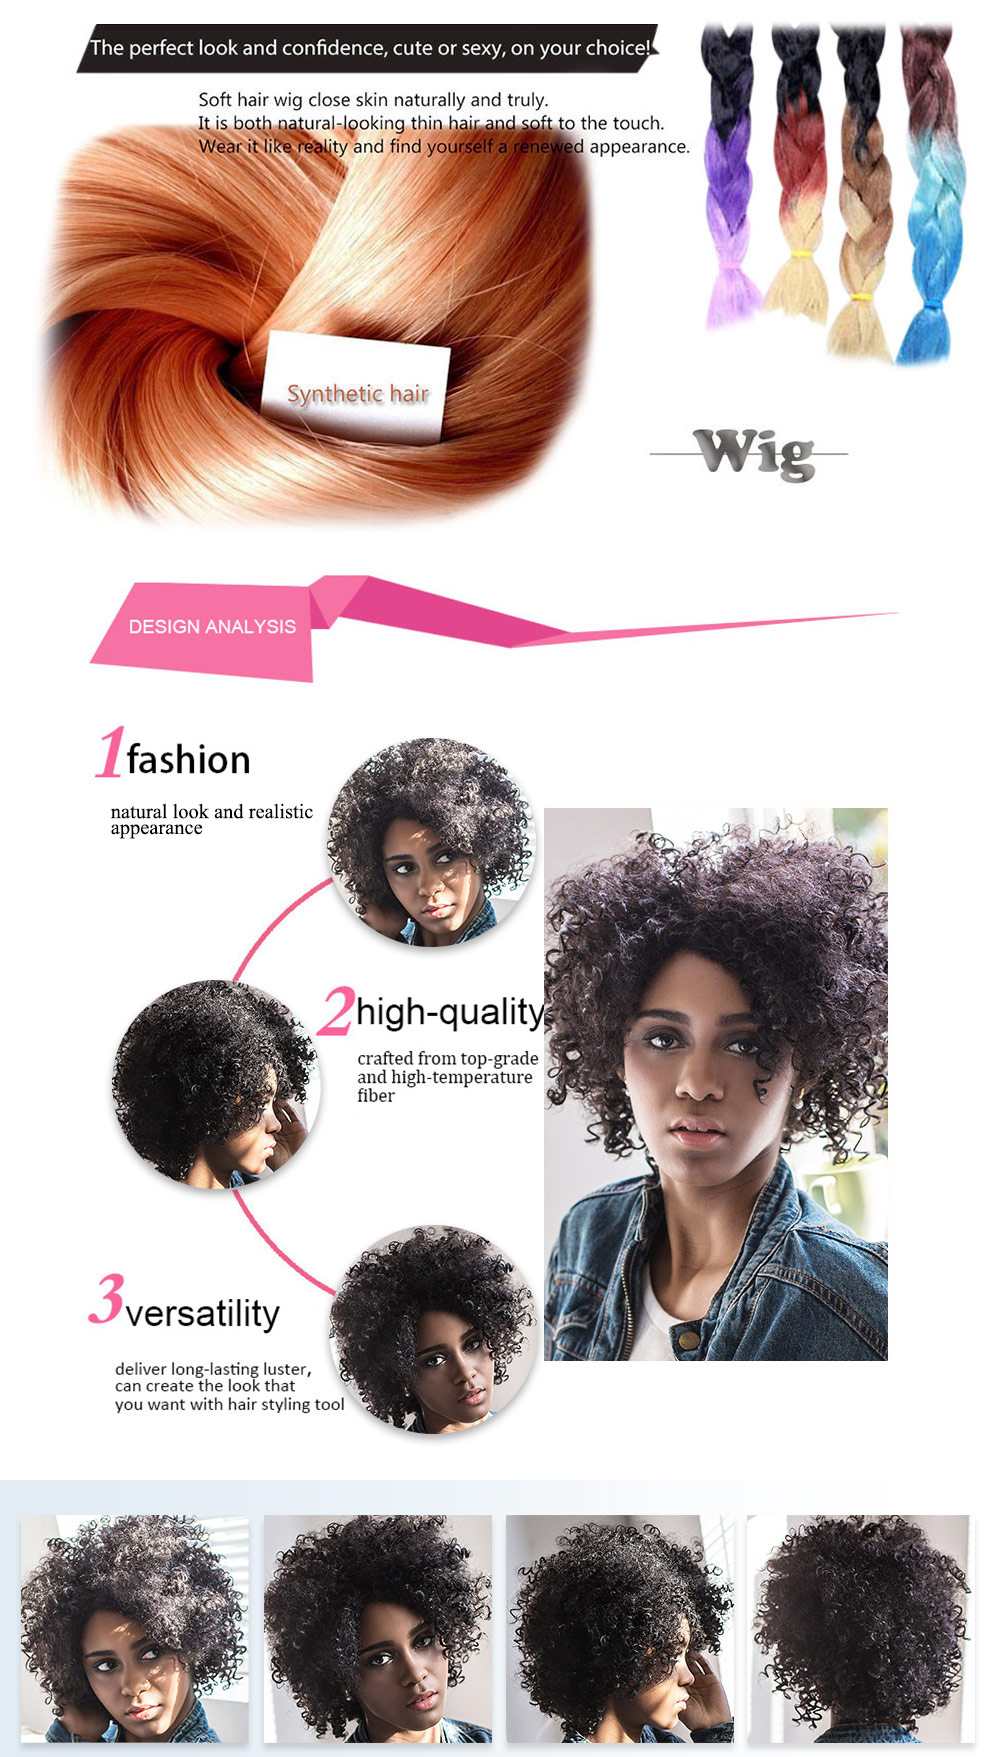 AISIHAIR Women Short Side Bang Black Afro Curly Synthetic Hair Wig